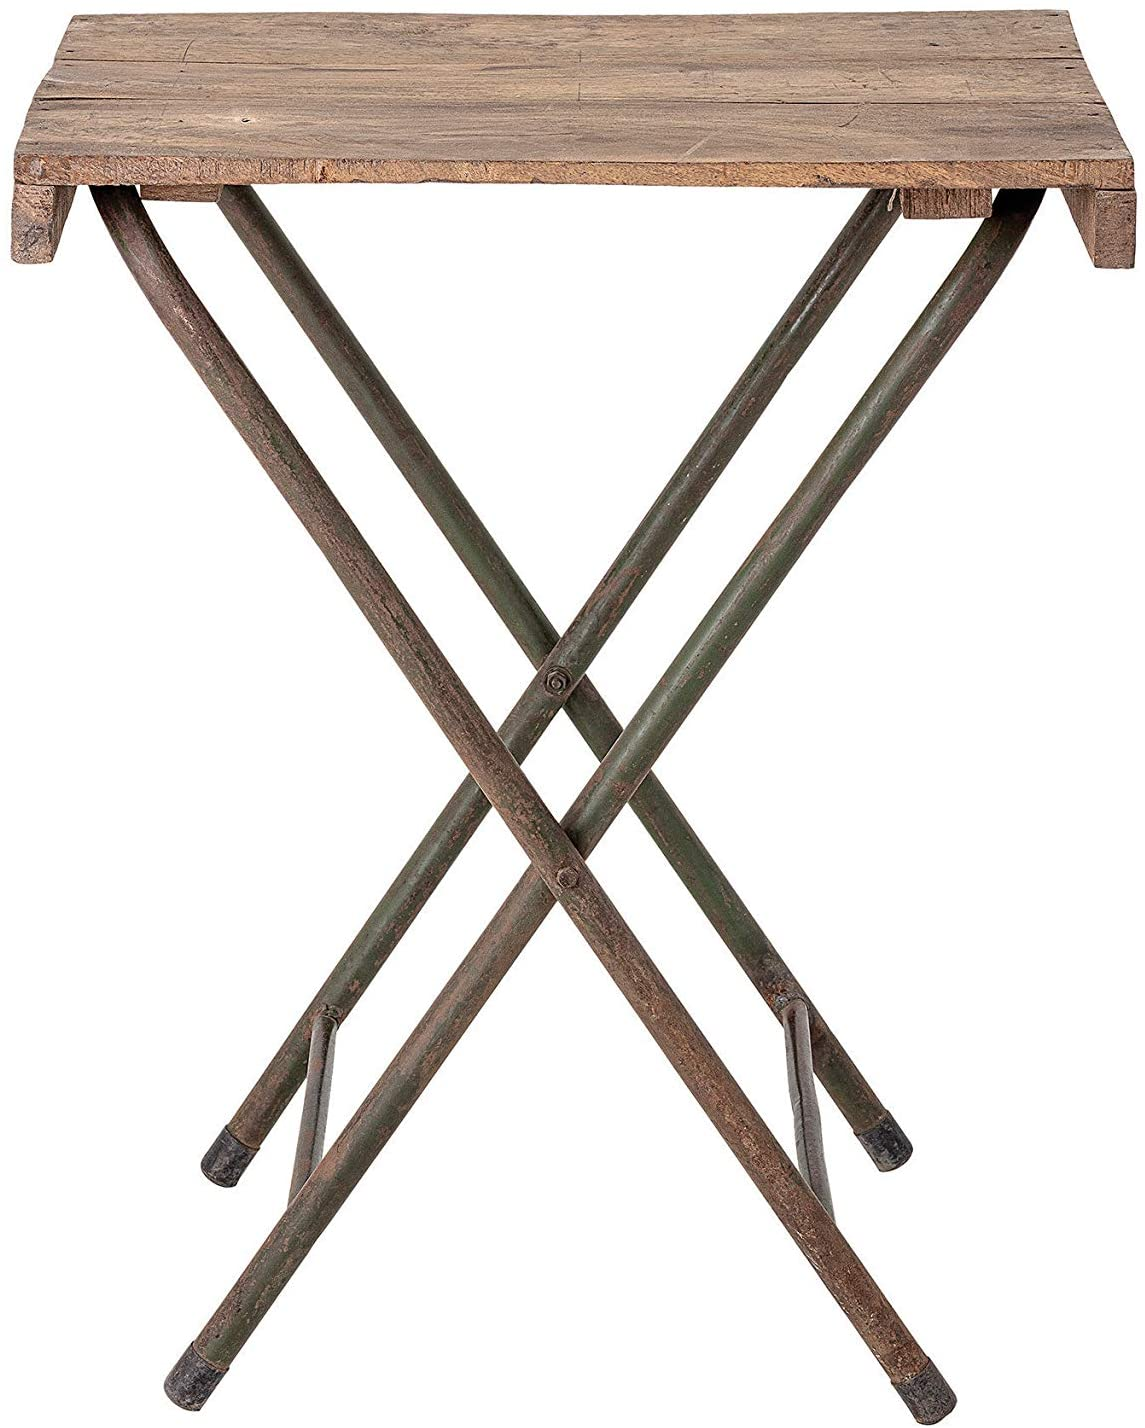 Creative Co-op Found Wood Folding Metal Legs Table, Natural